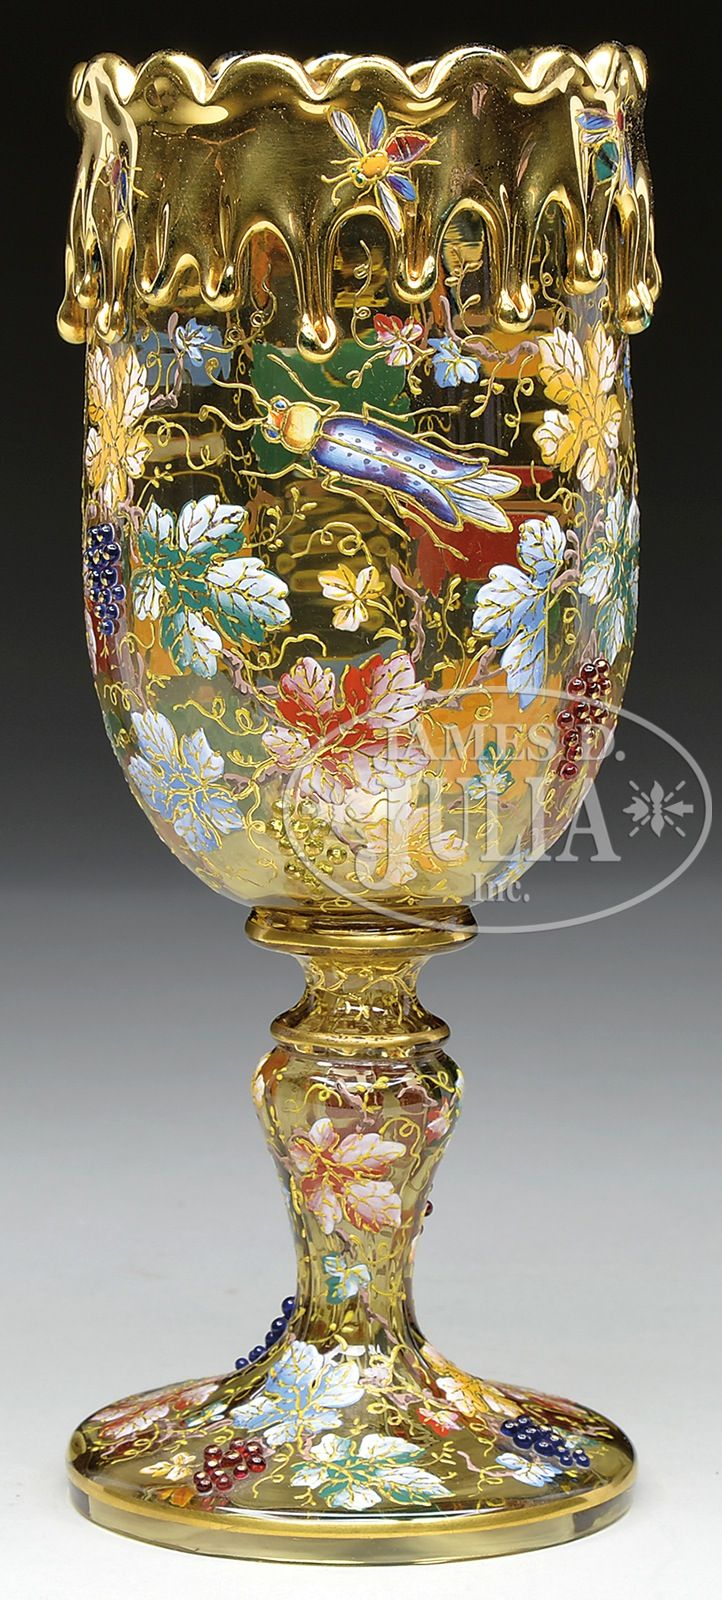 MOSER DECORATED CHALICE.Chalice is pictured in the book Moser Glass The Klabin Collection by Gary D.Baldwin, pg.77 plate 92.